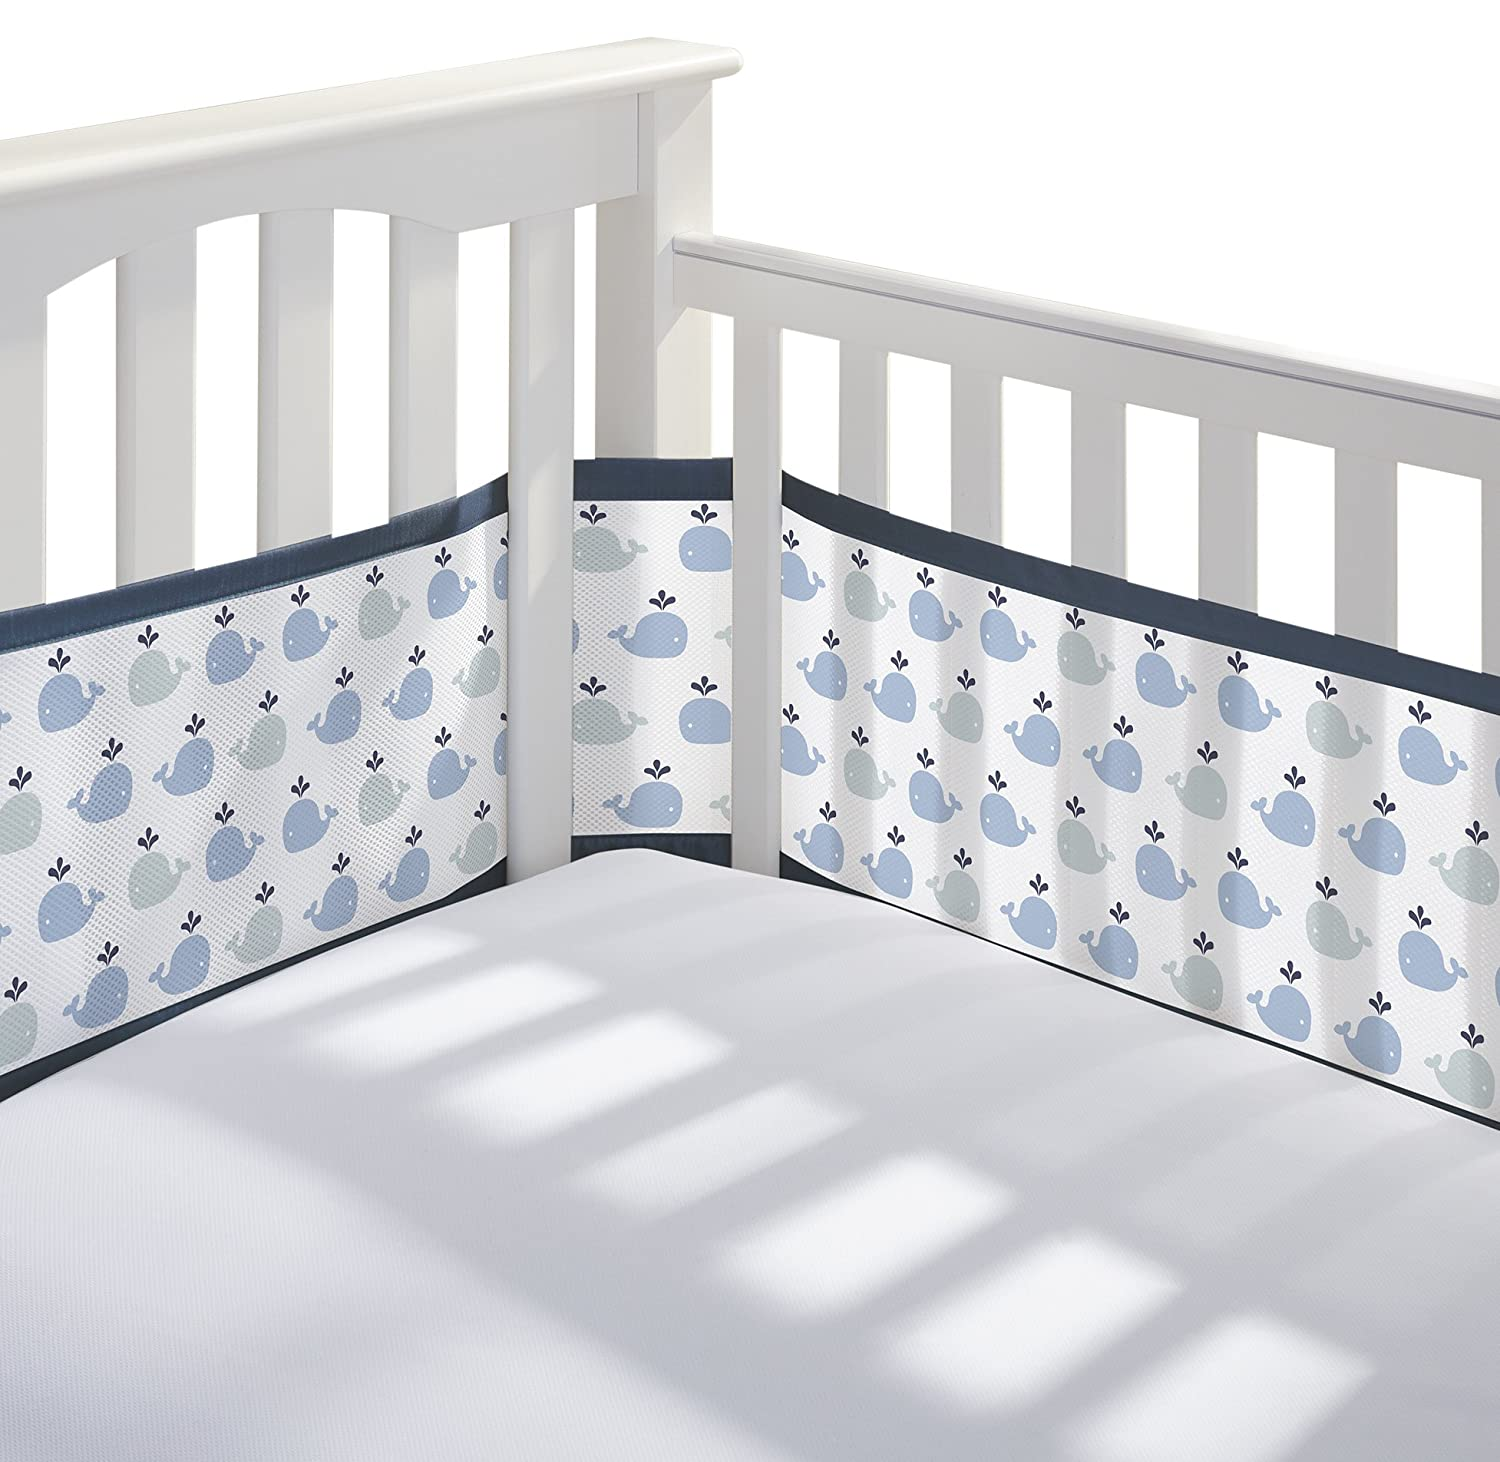 BreathableBaby | Breathable Mesh Printed Crib Liner | Doctor Endorsed | Helps Prevent Arms and Legs from Getting Stuck Between Crib Slats | Independently Tested for Safety | Peaceful Elephant Gray 14018